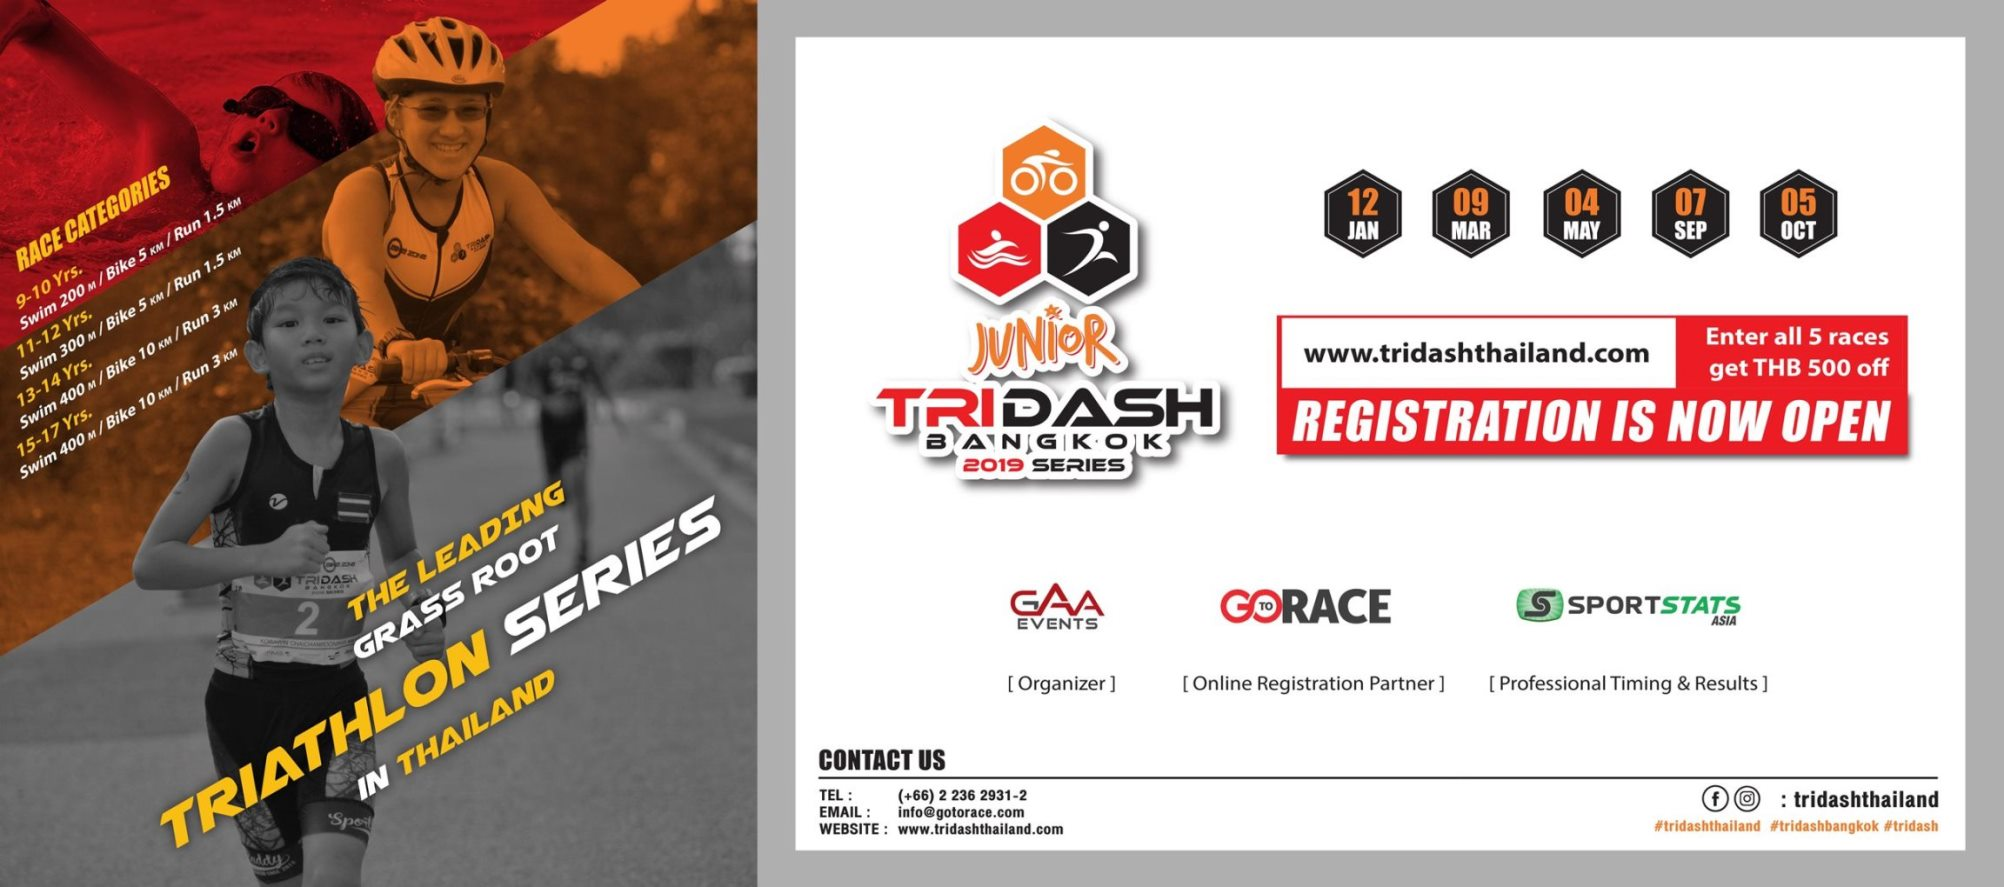 Junior Tri Dash Bangkok 2019 - Race Connections